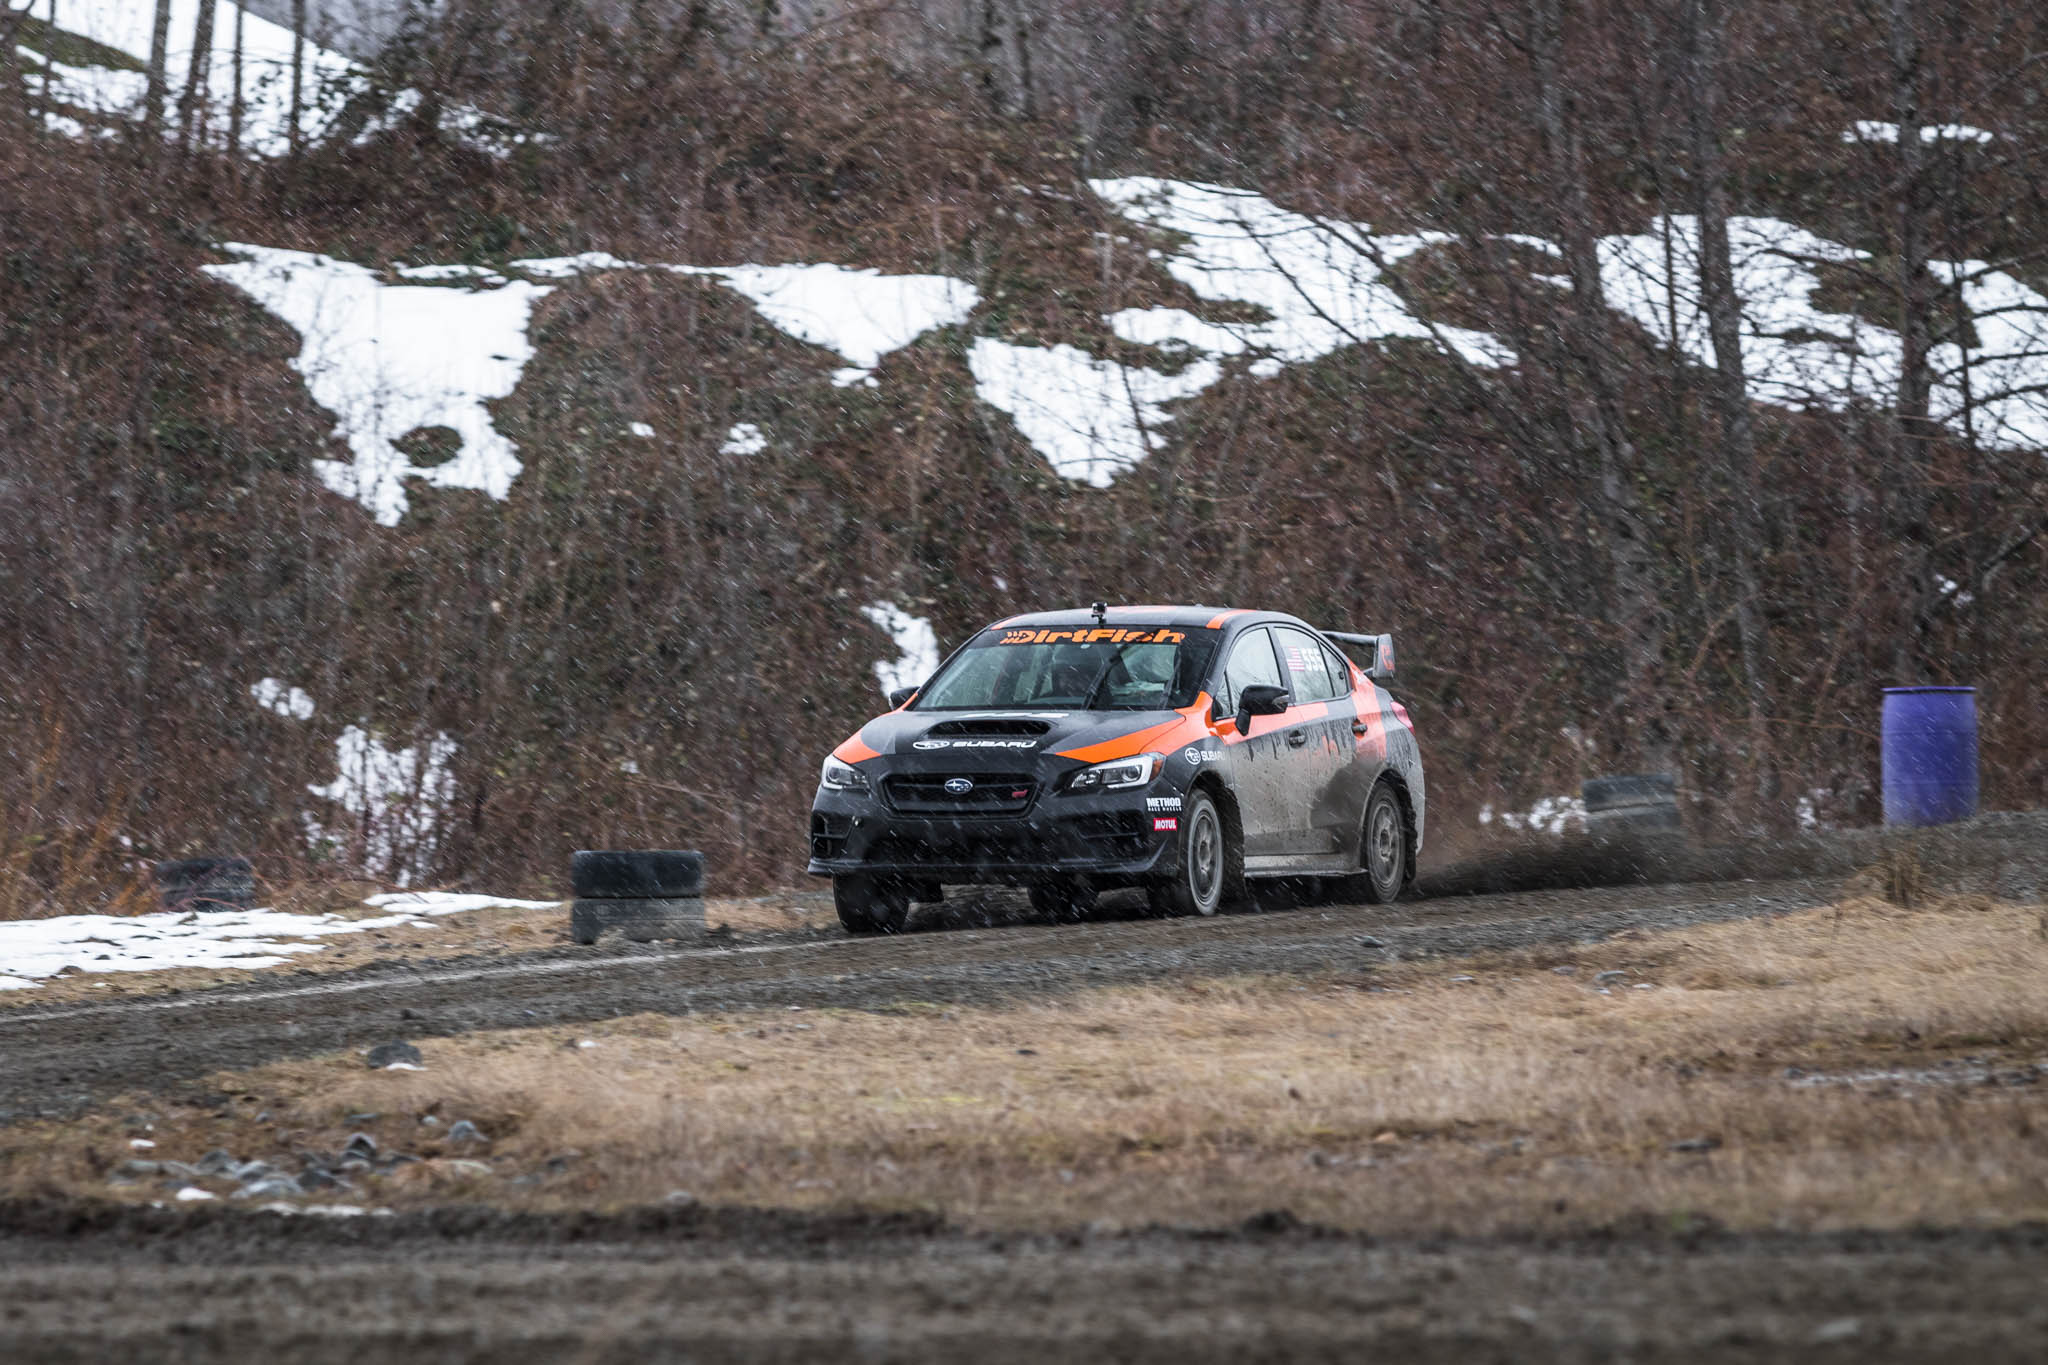 It's often said that rally drivers are a different breed. Do you agree?